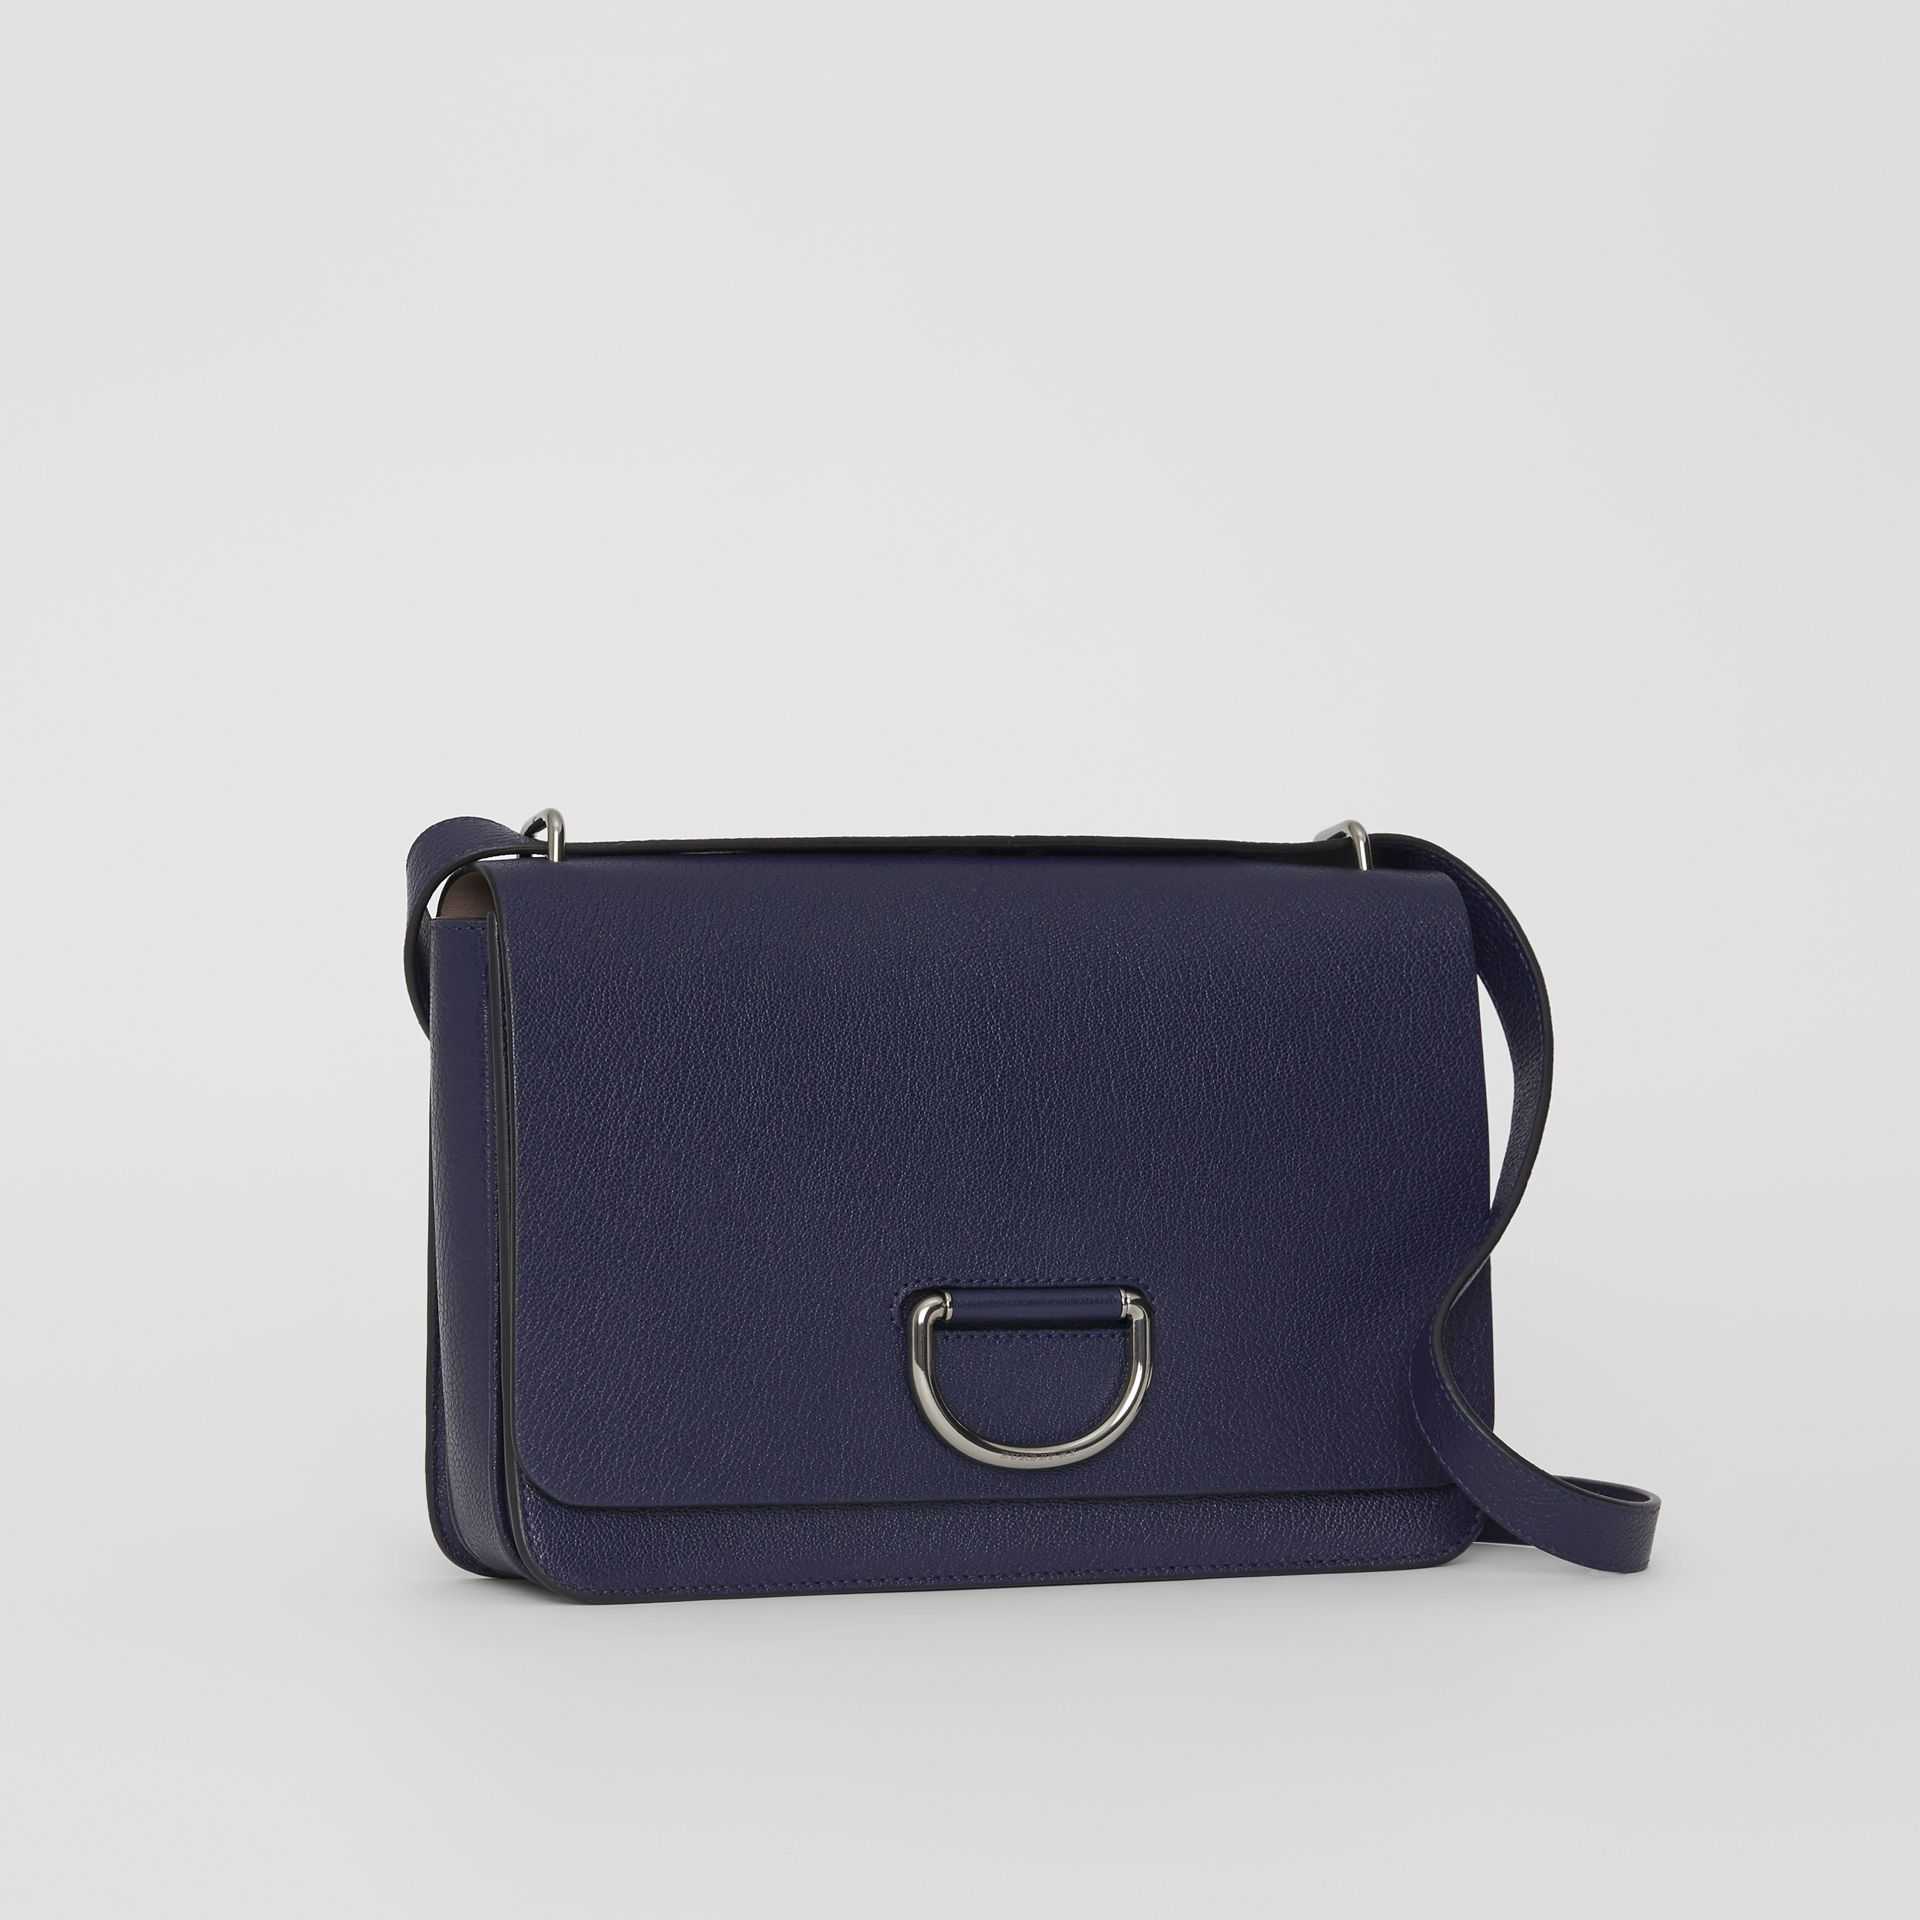 Borsa The D-ring media in pelle (Blu Reggenza) - Donna | Burberry - immagine della galleria 7